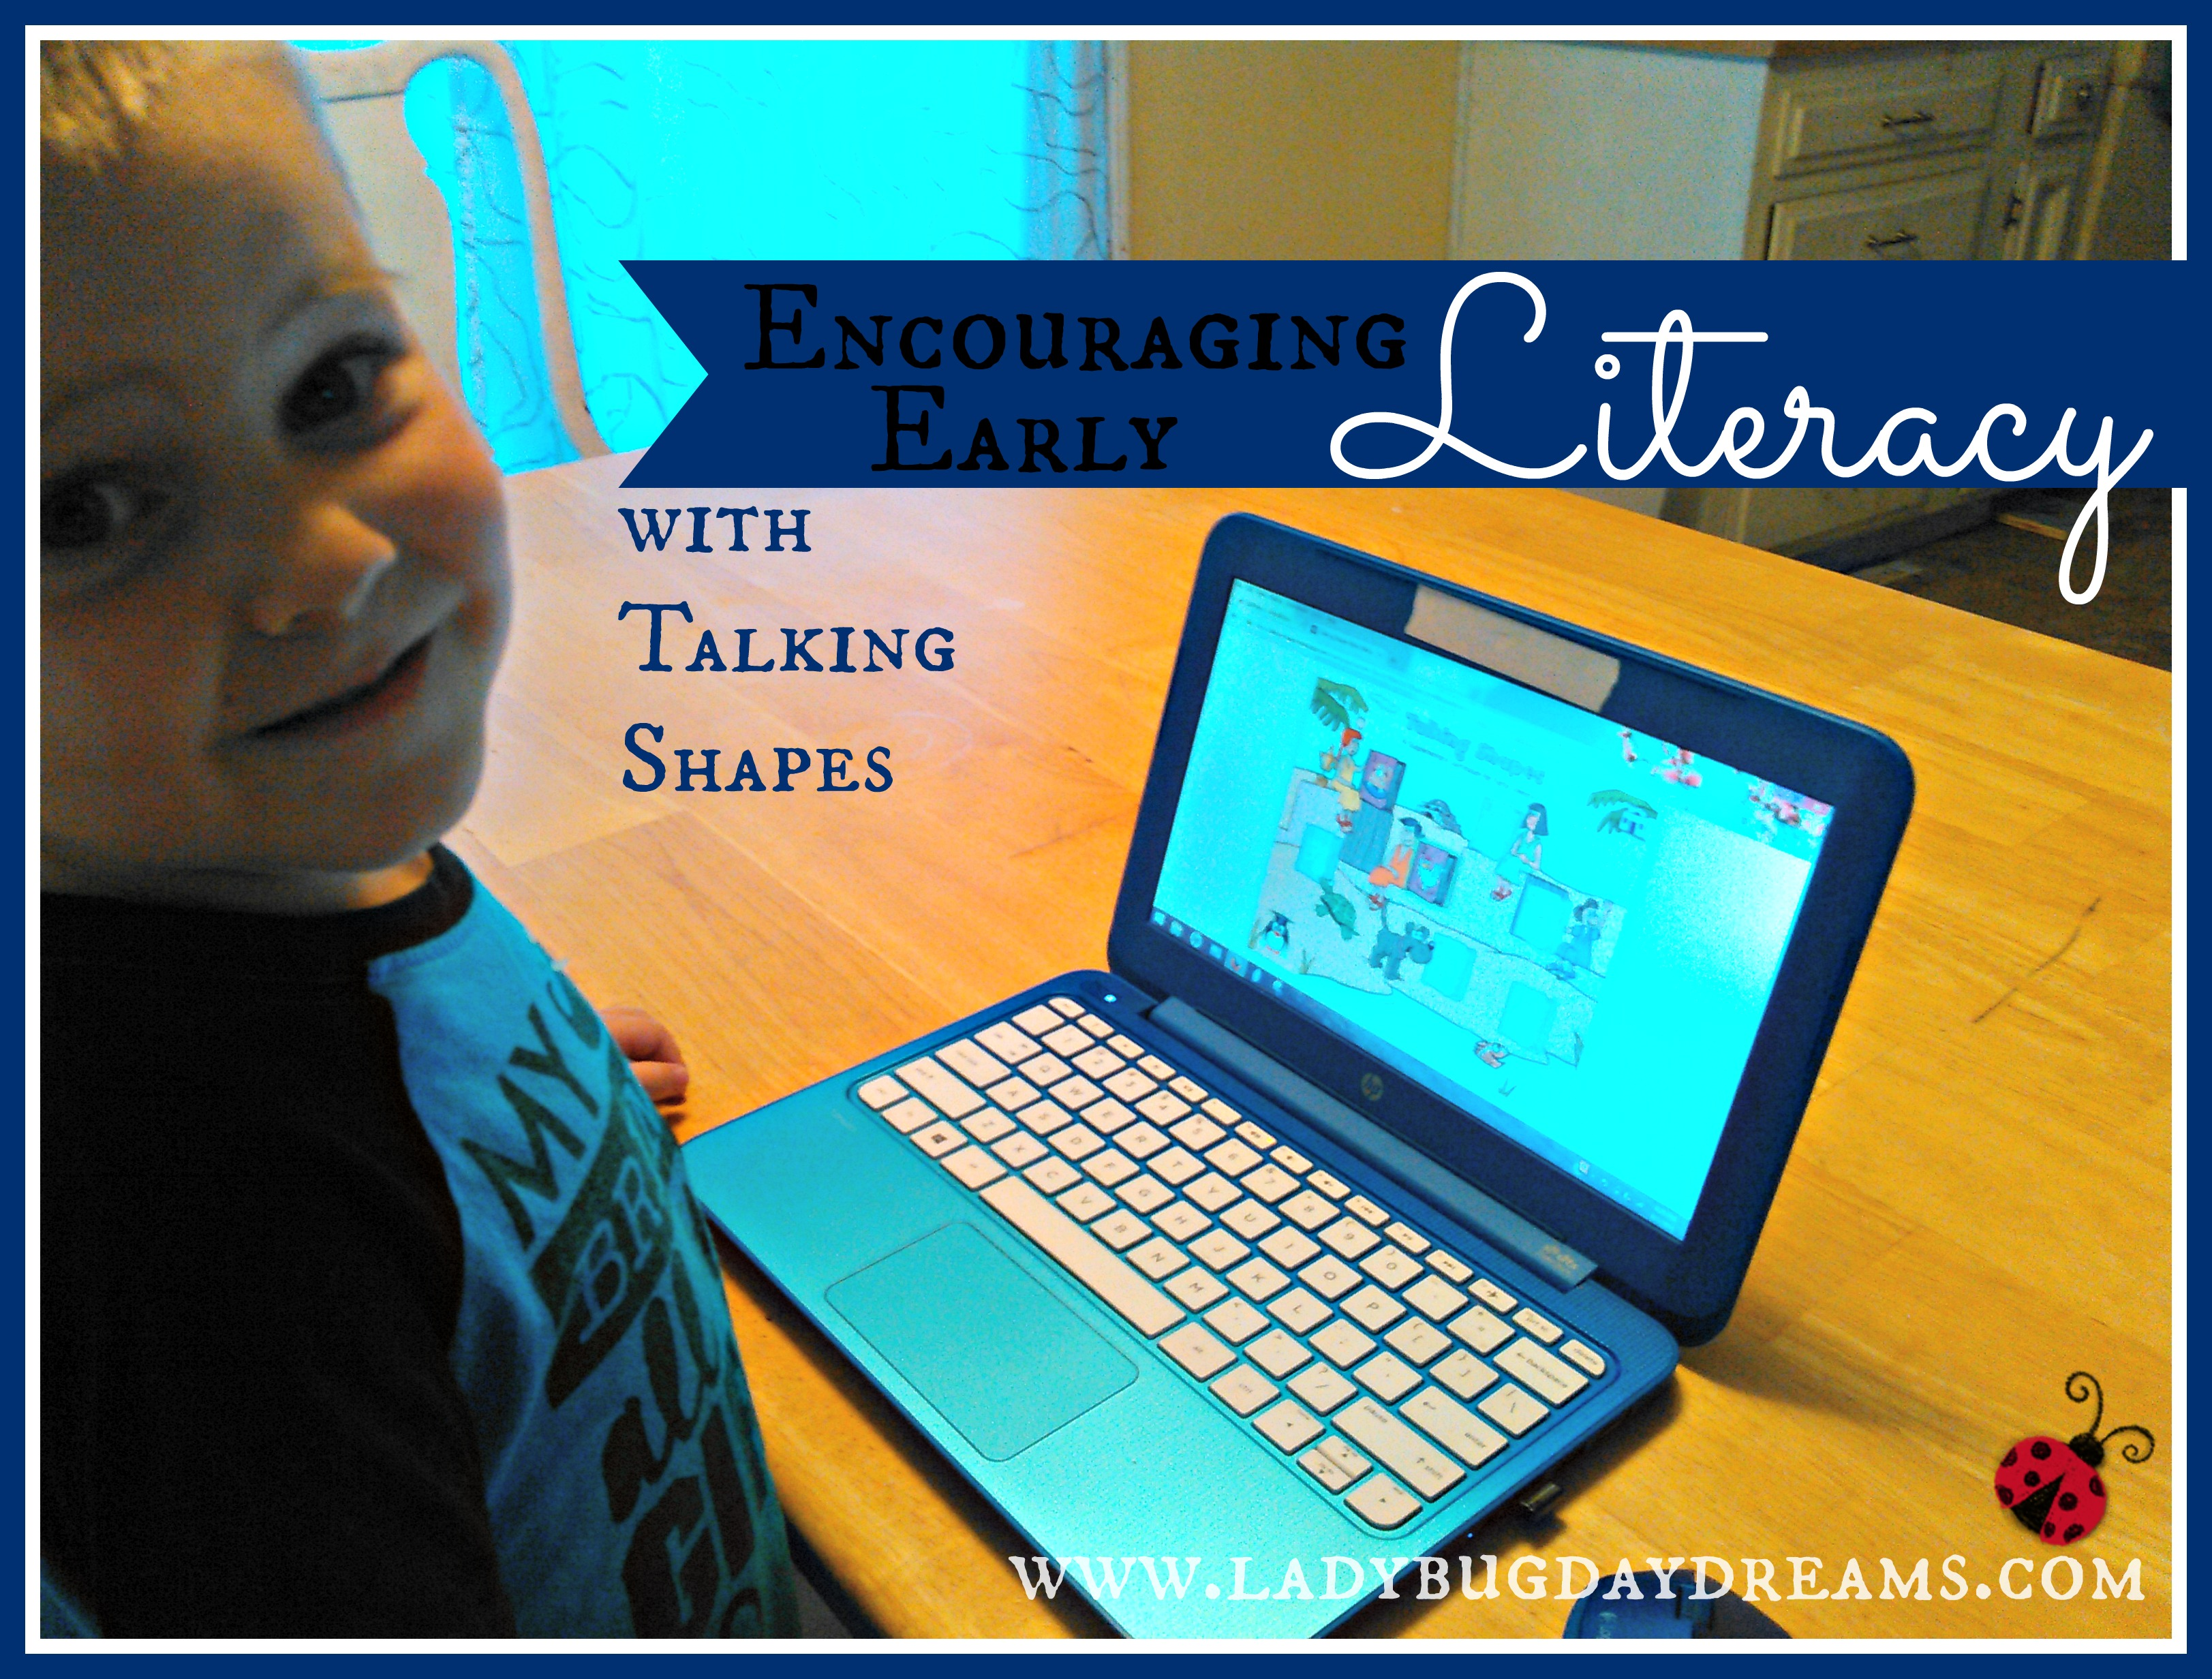 Encouraging Early Literacy with Talking Shapes